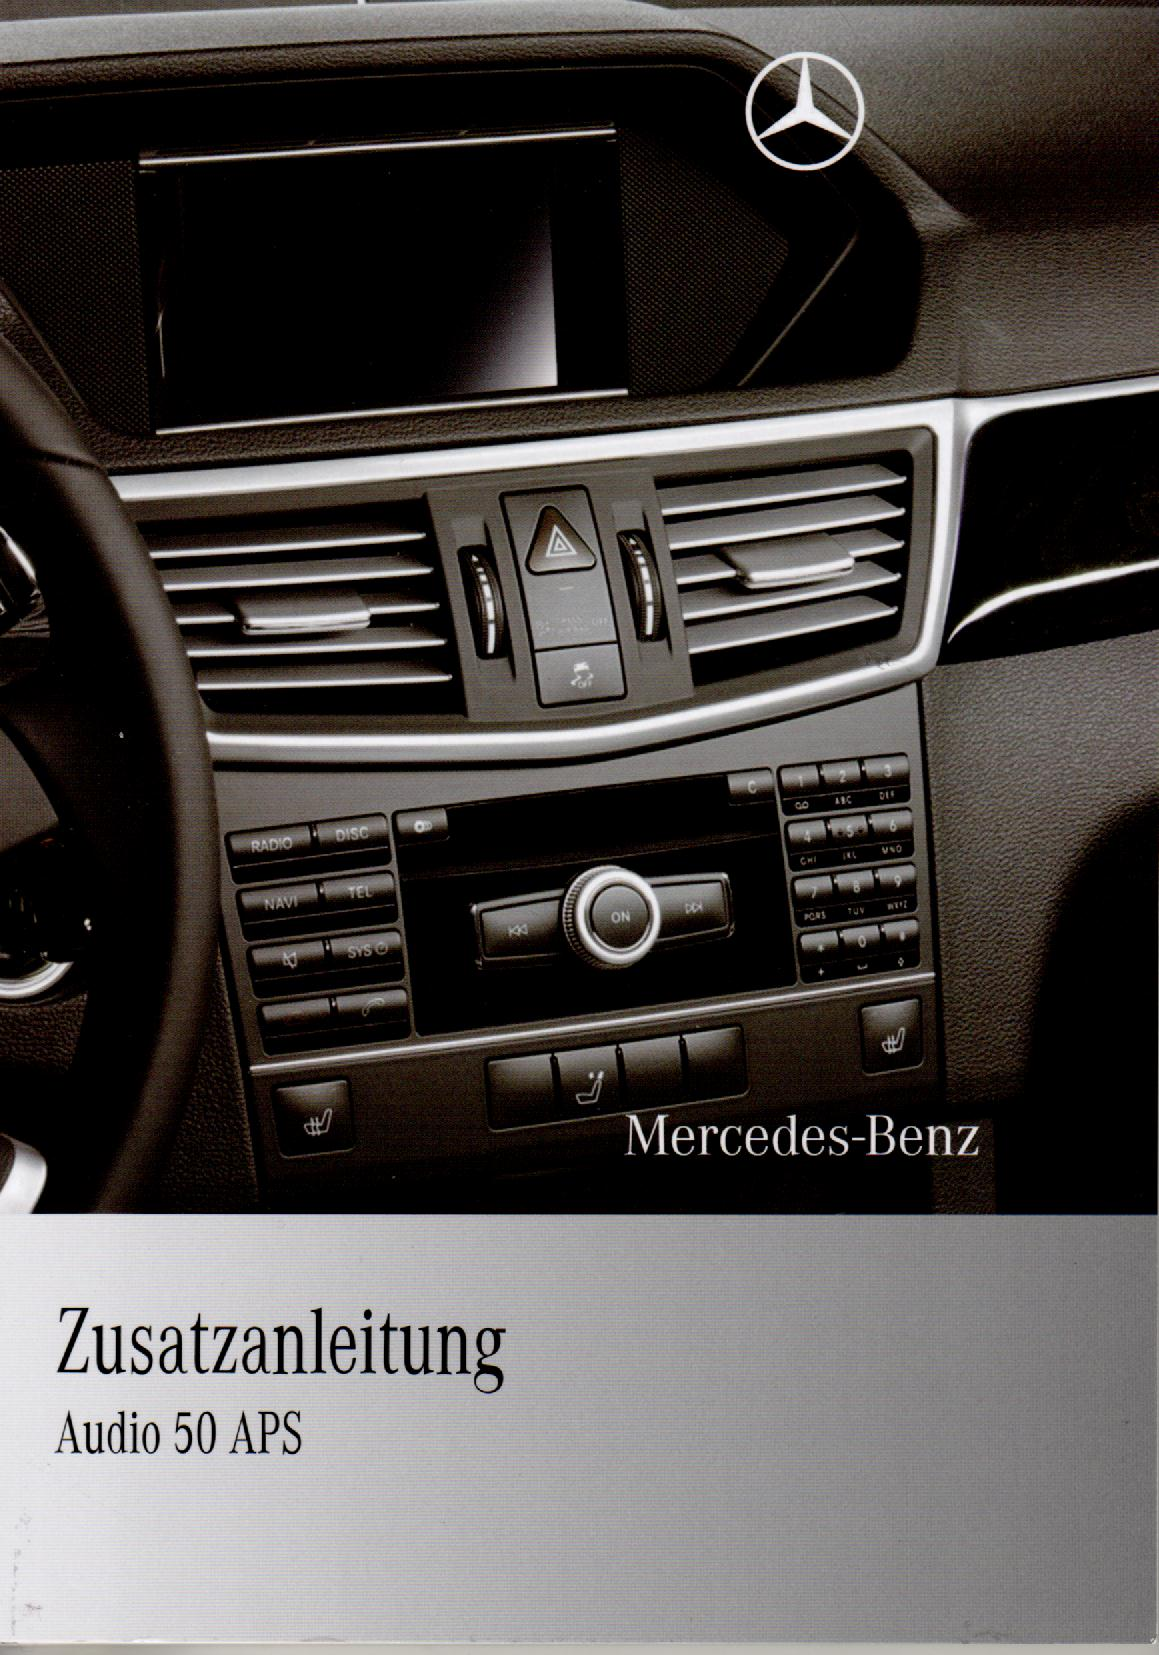 mercedes audio 50 aps betriebsanleitung 2010 bedienungsanleitung 212 handbuch rn. Black Bedroom Furniture Sets. Home Design Ideas